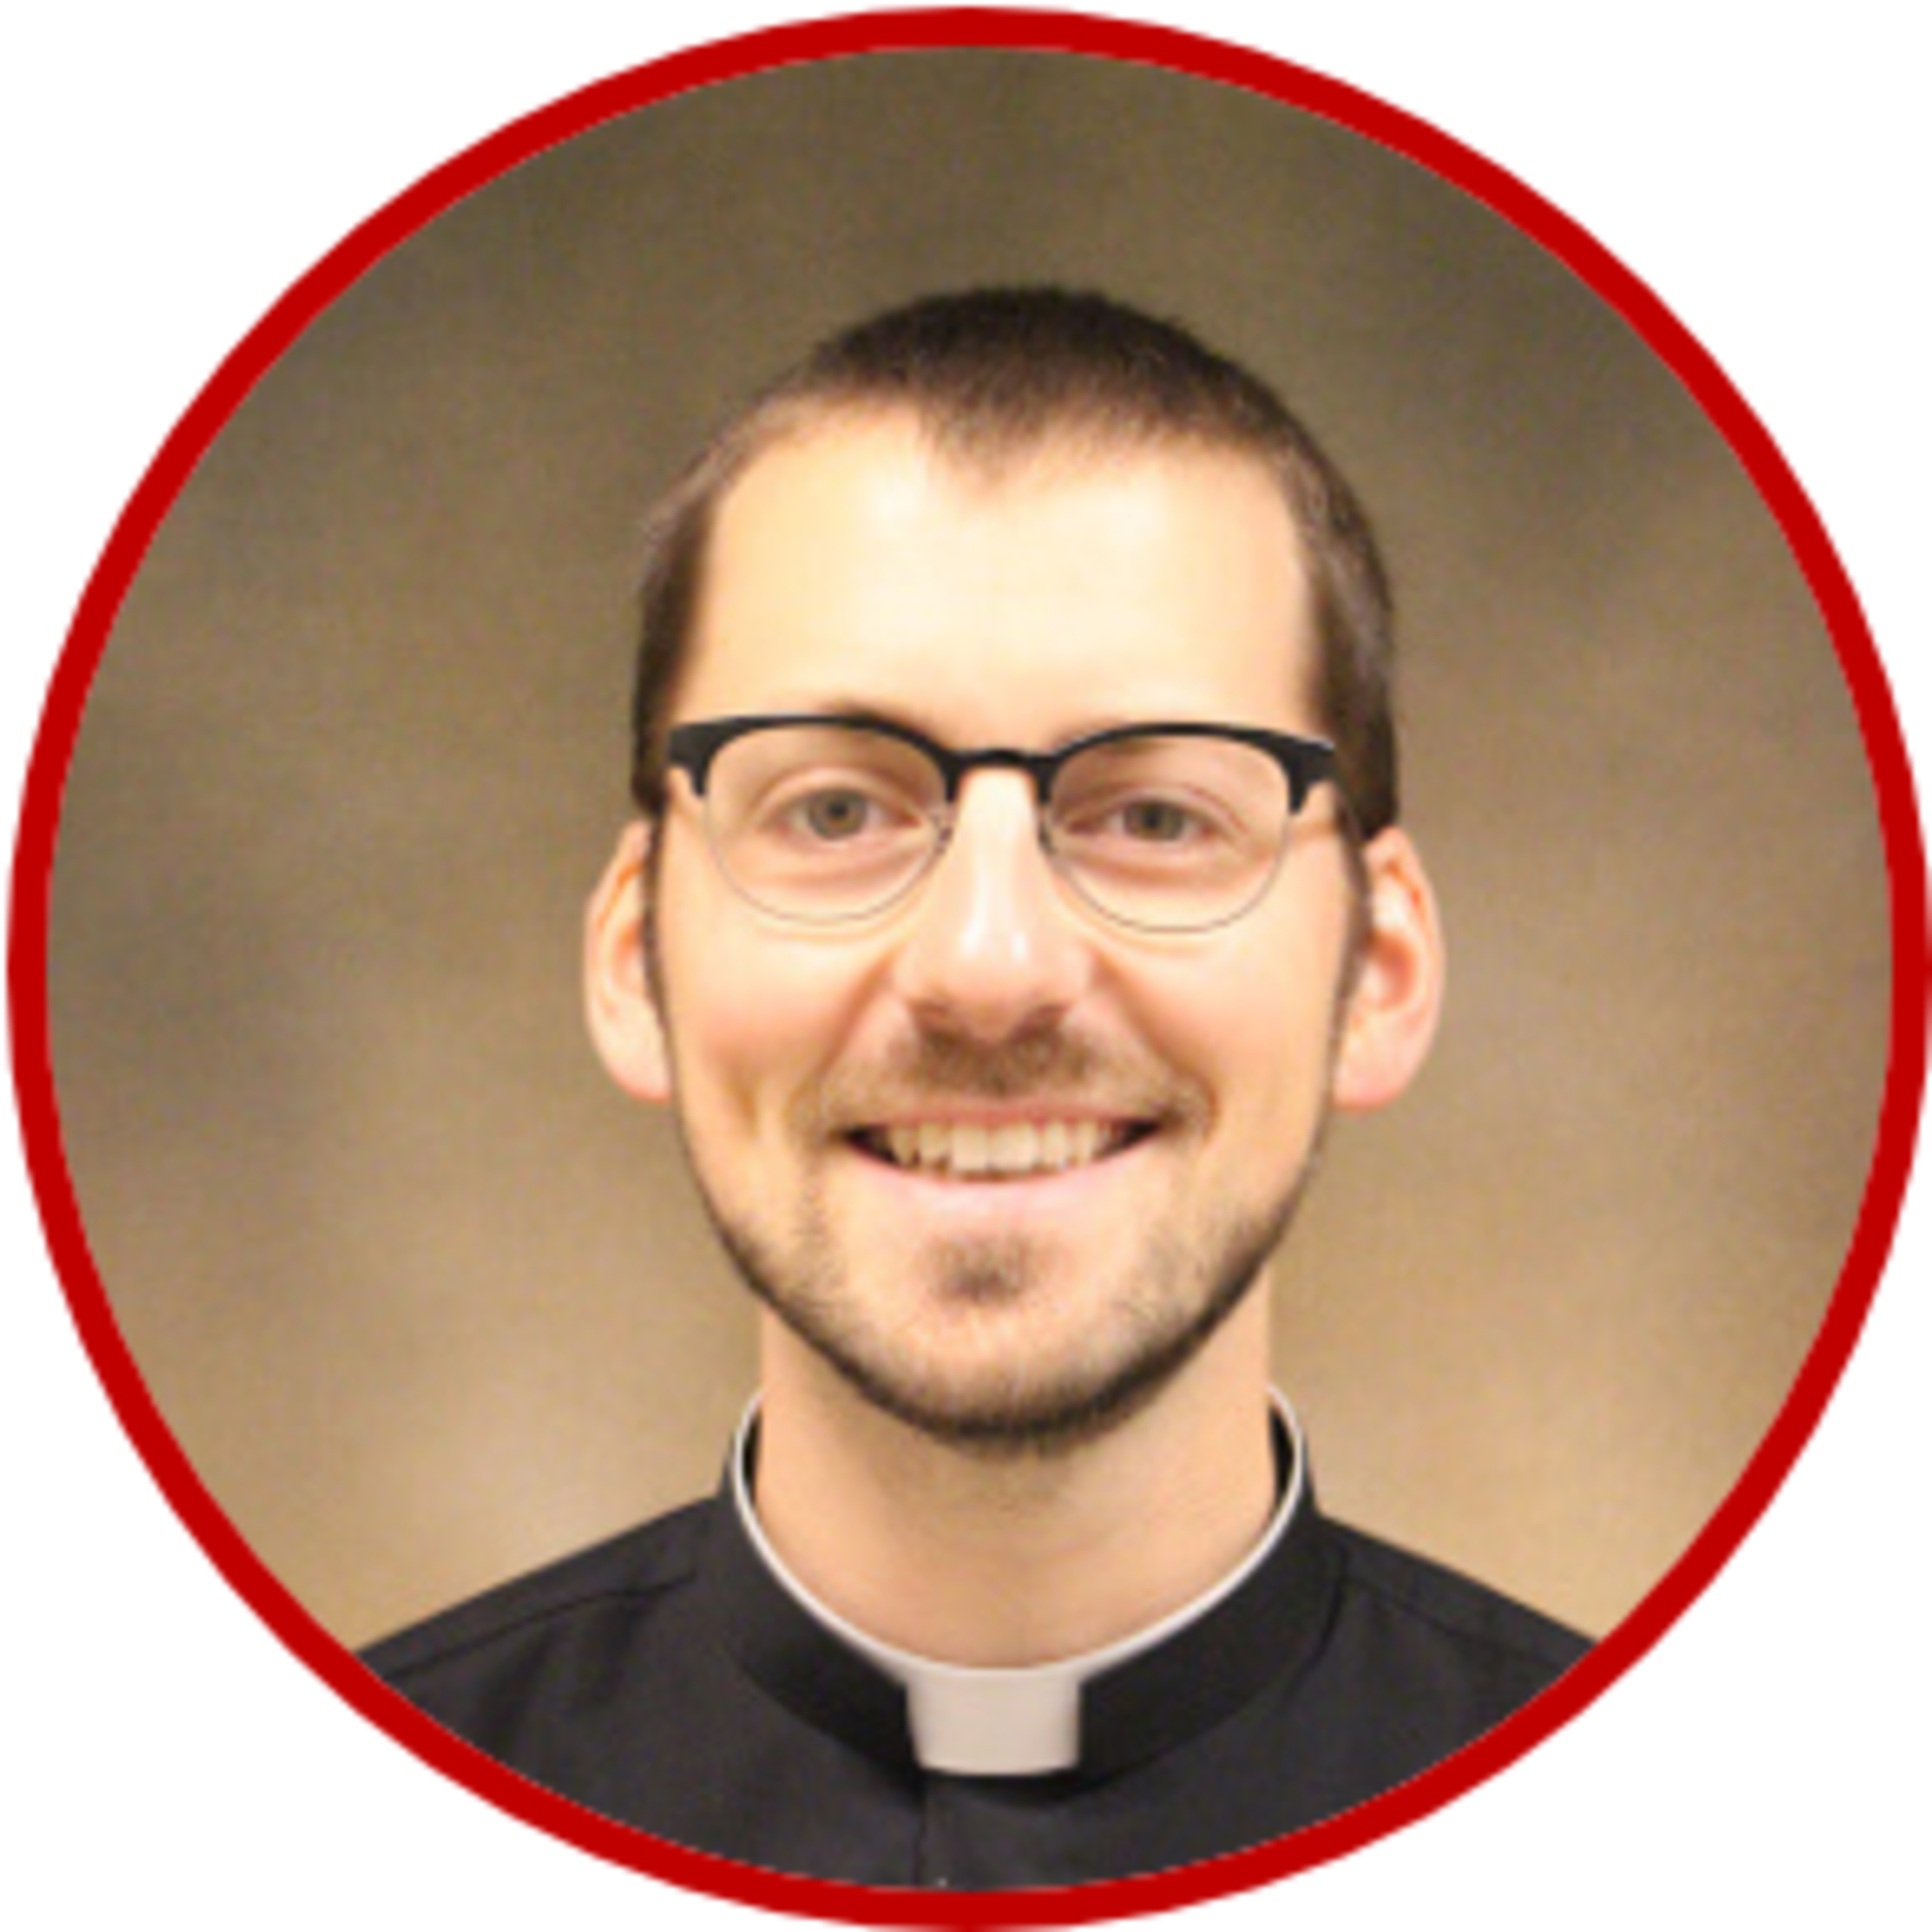 27th Sunday in Ordinary Time: Fr. Christian DeCarlo